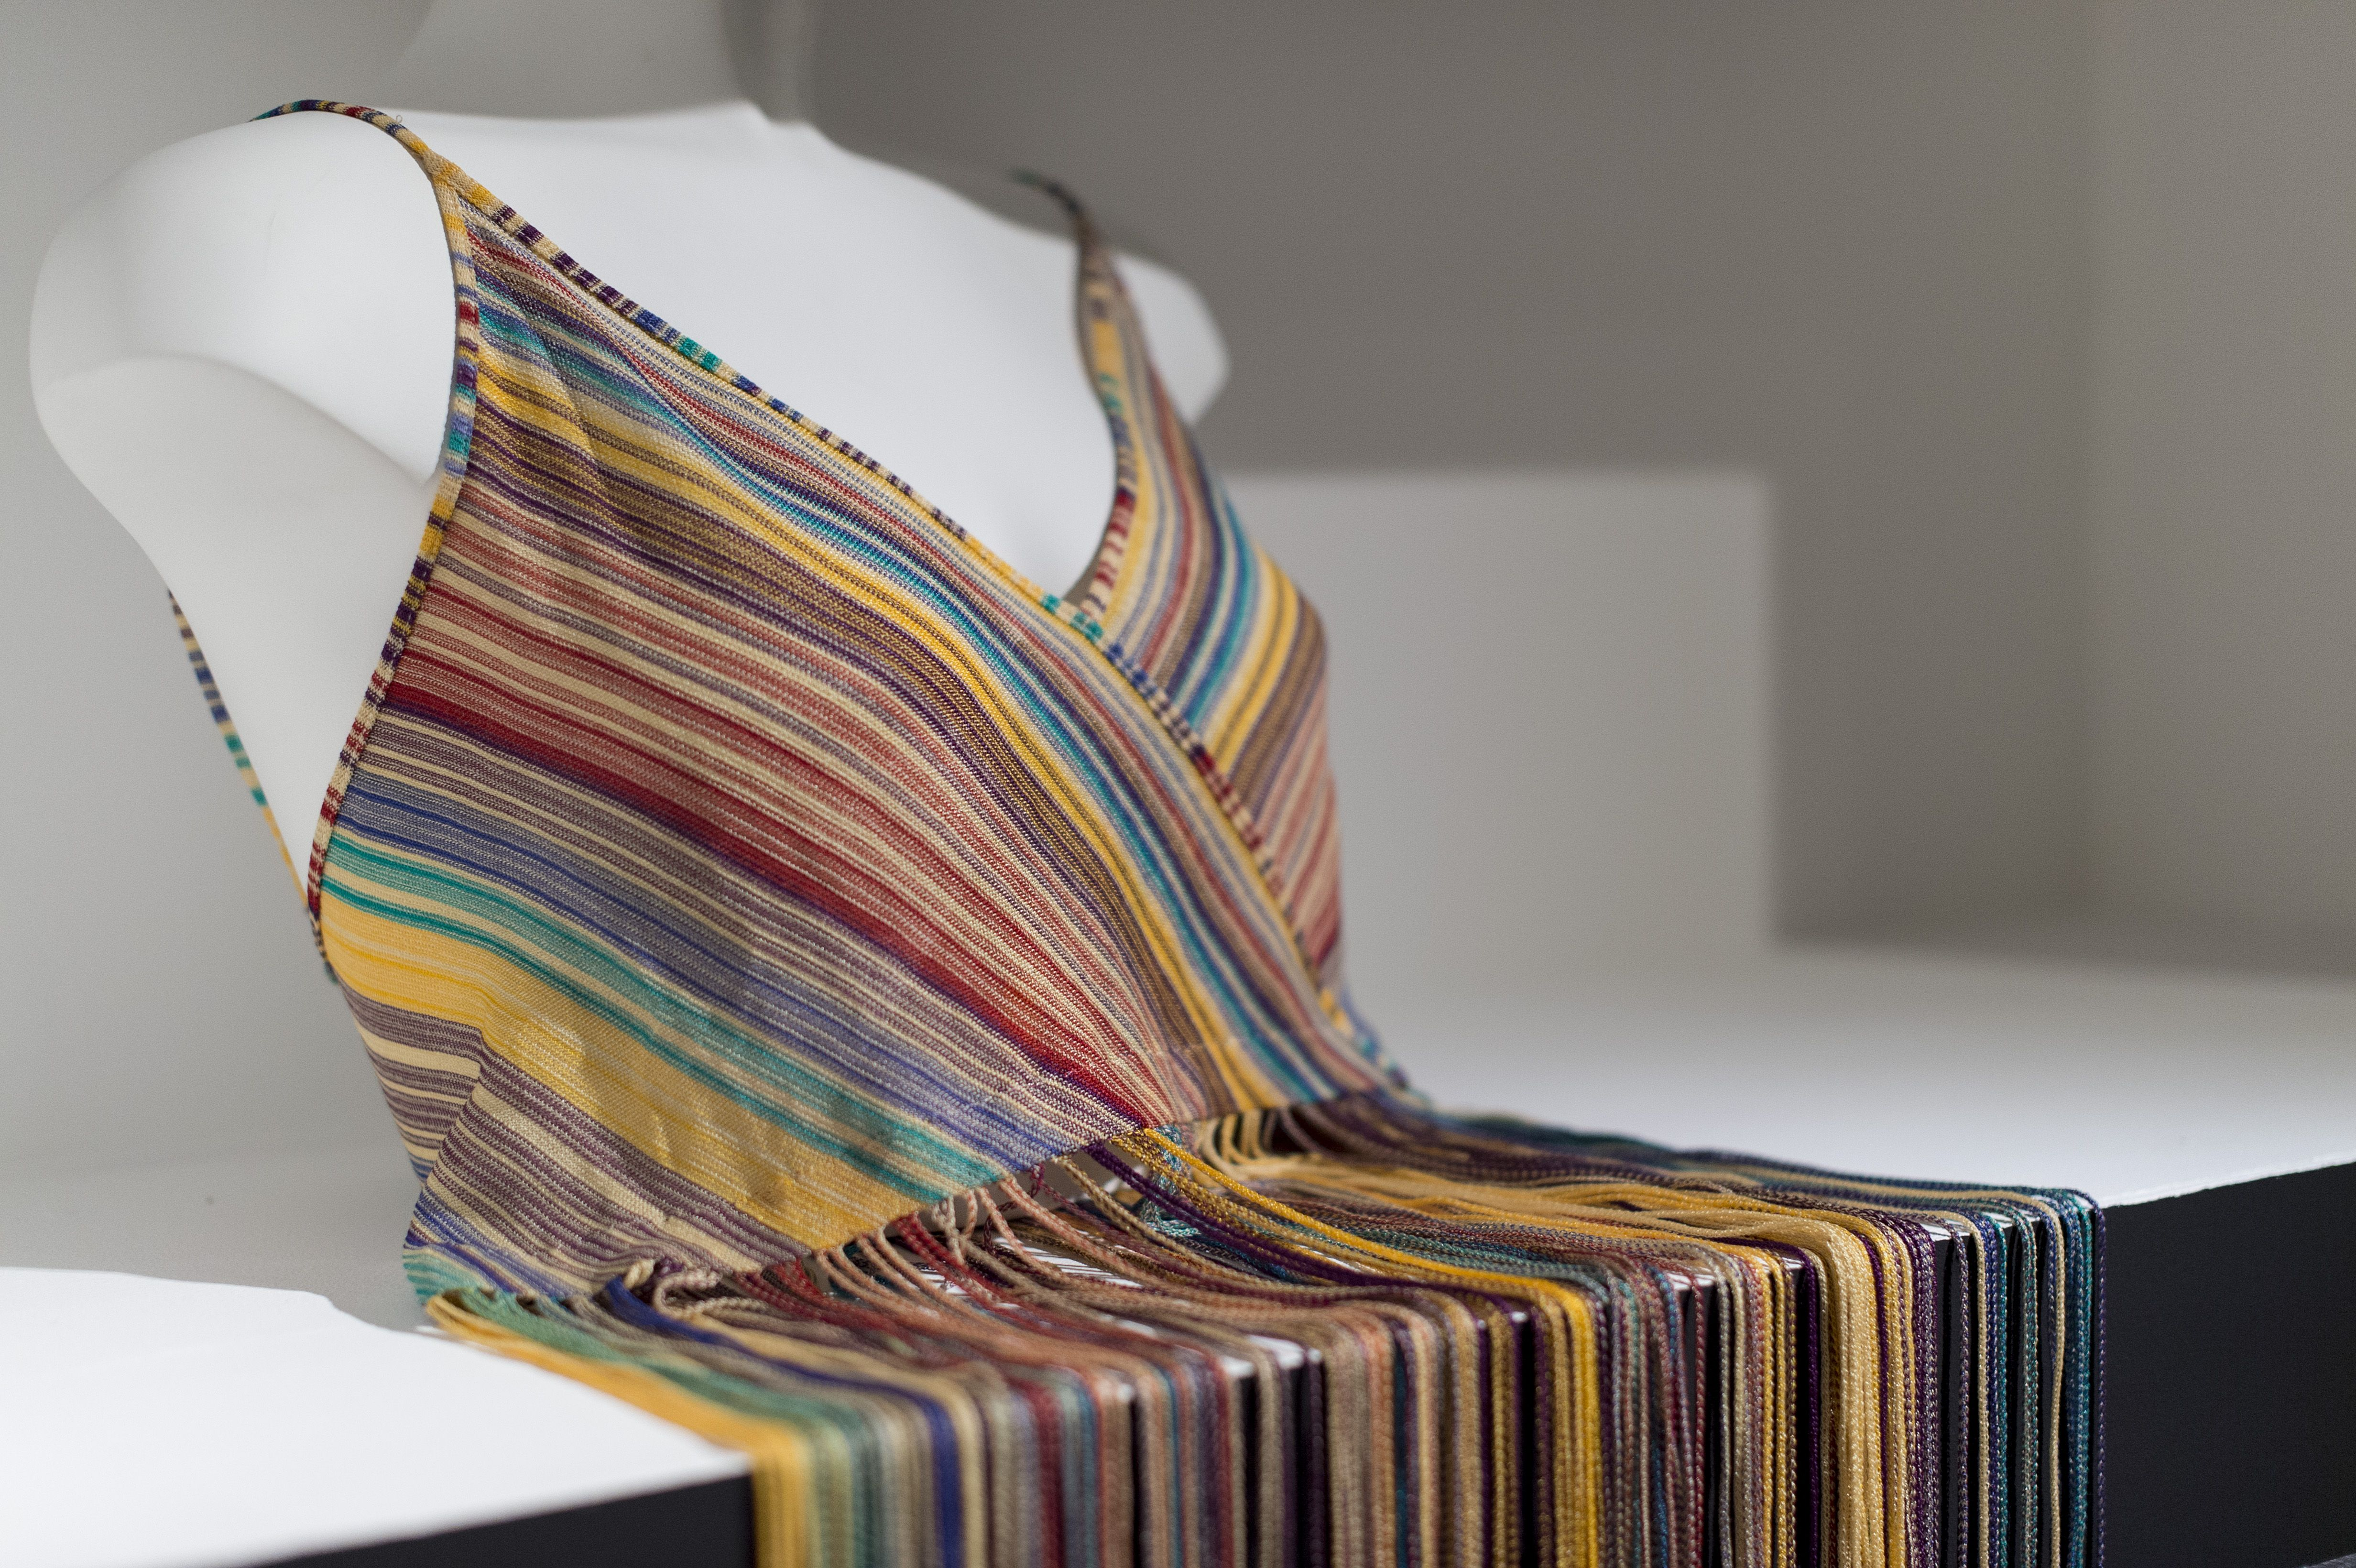 Vest Missoni, C 1970s, Rayon This fine knit, fringed vest is typical of the Missoni style. Their use of space dyed machine knits was copied by knitwear manufacturers around the world.